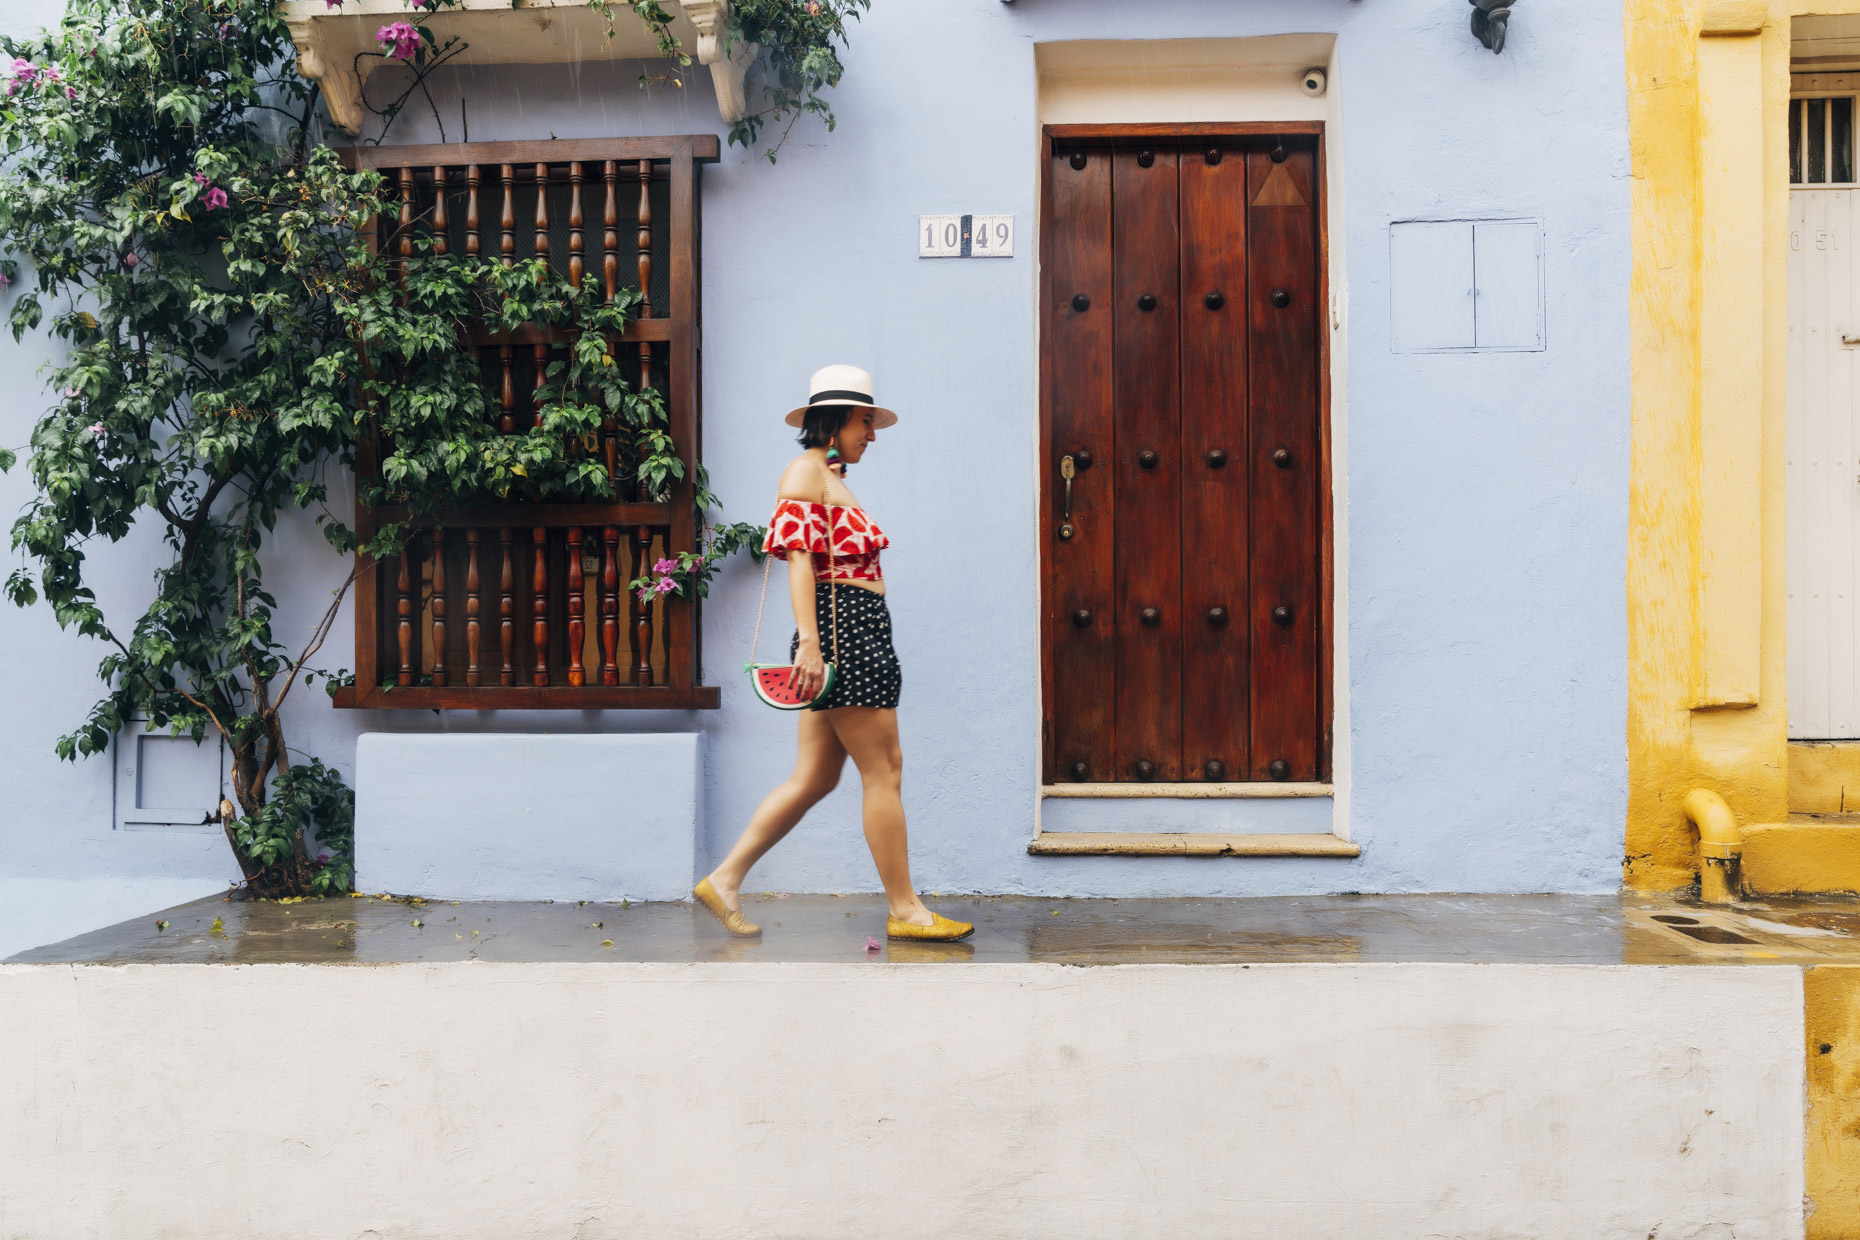 Woman with watermelon purse and top walking  on colorful street in Cartagena, Colombia